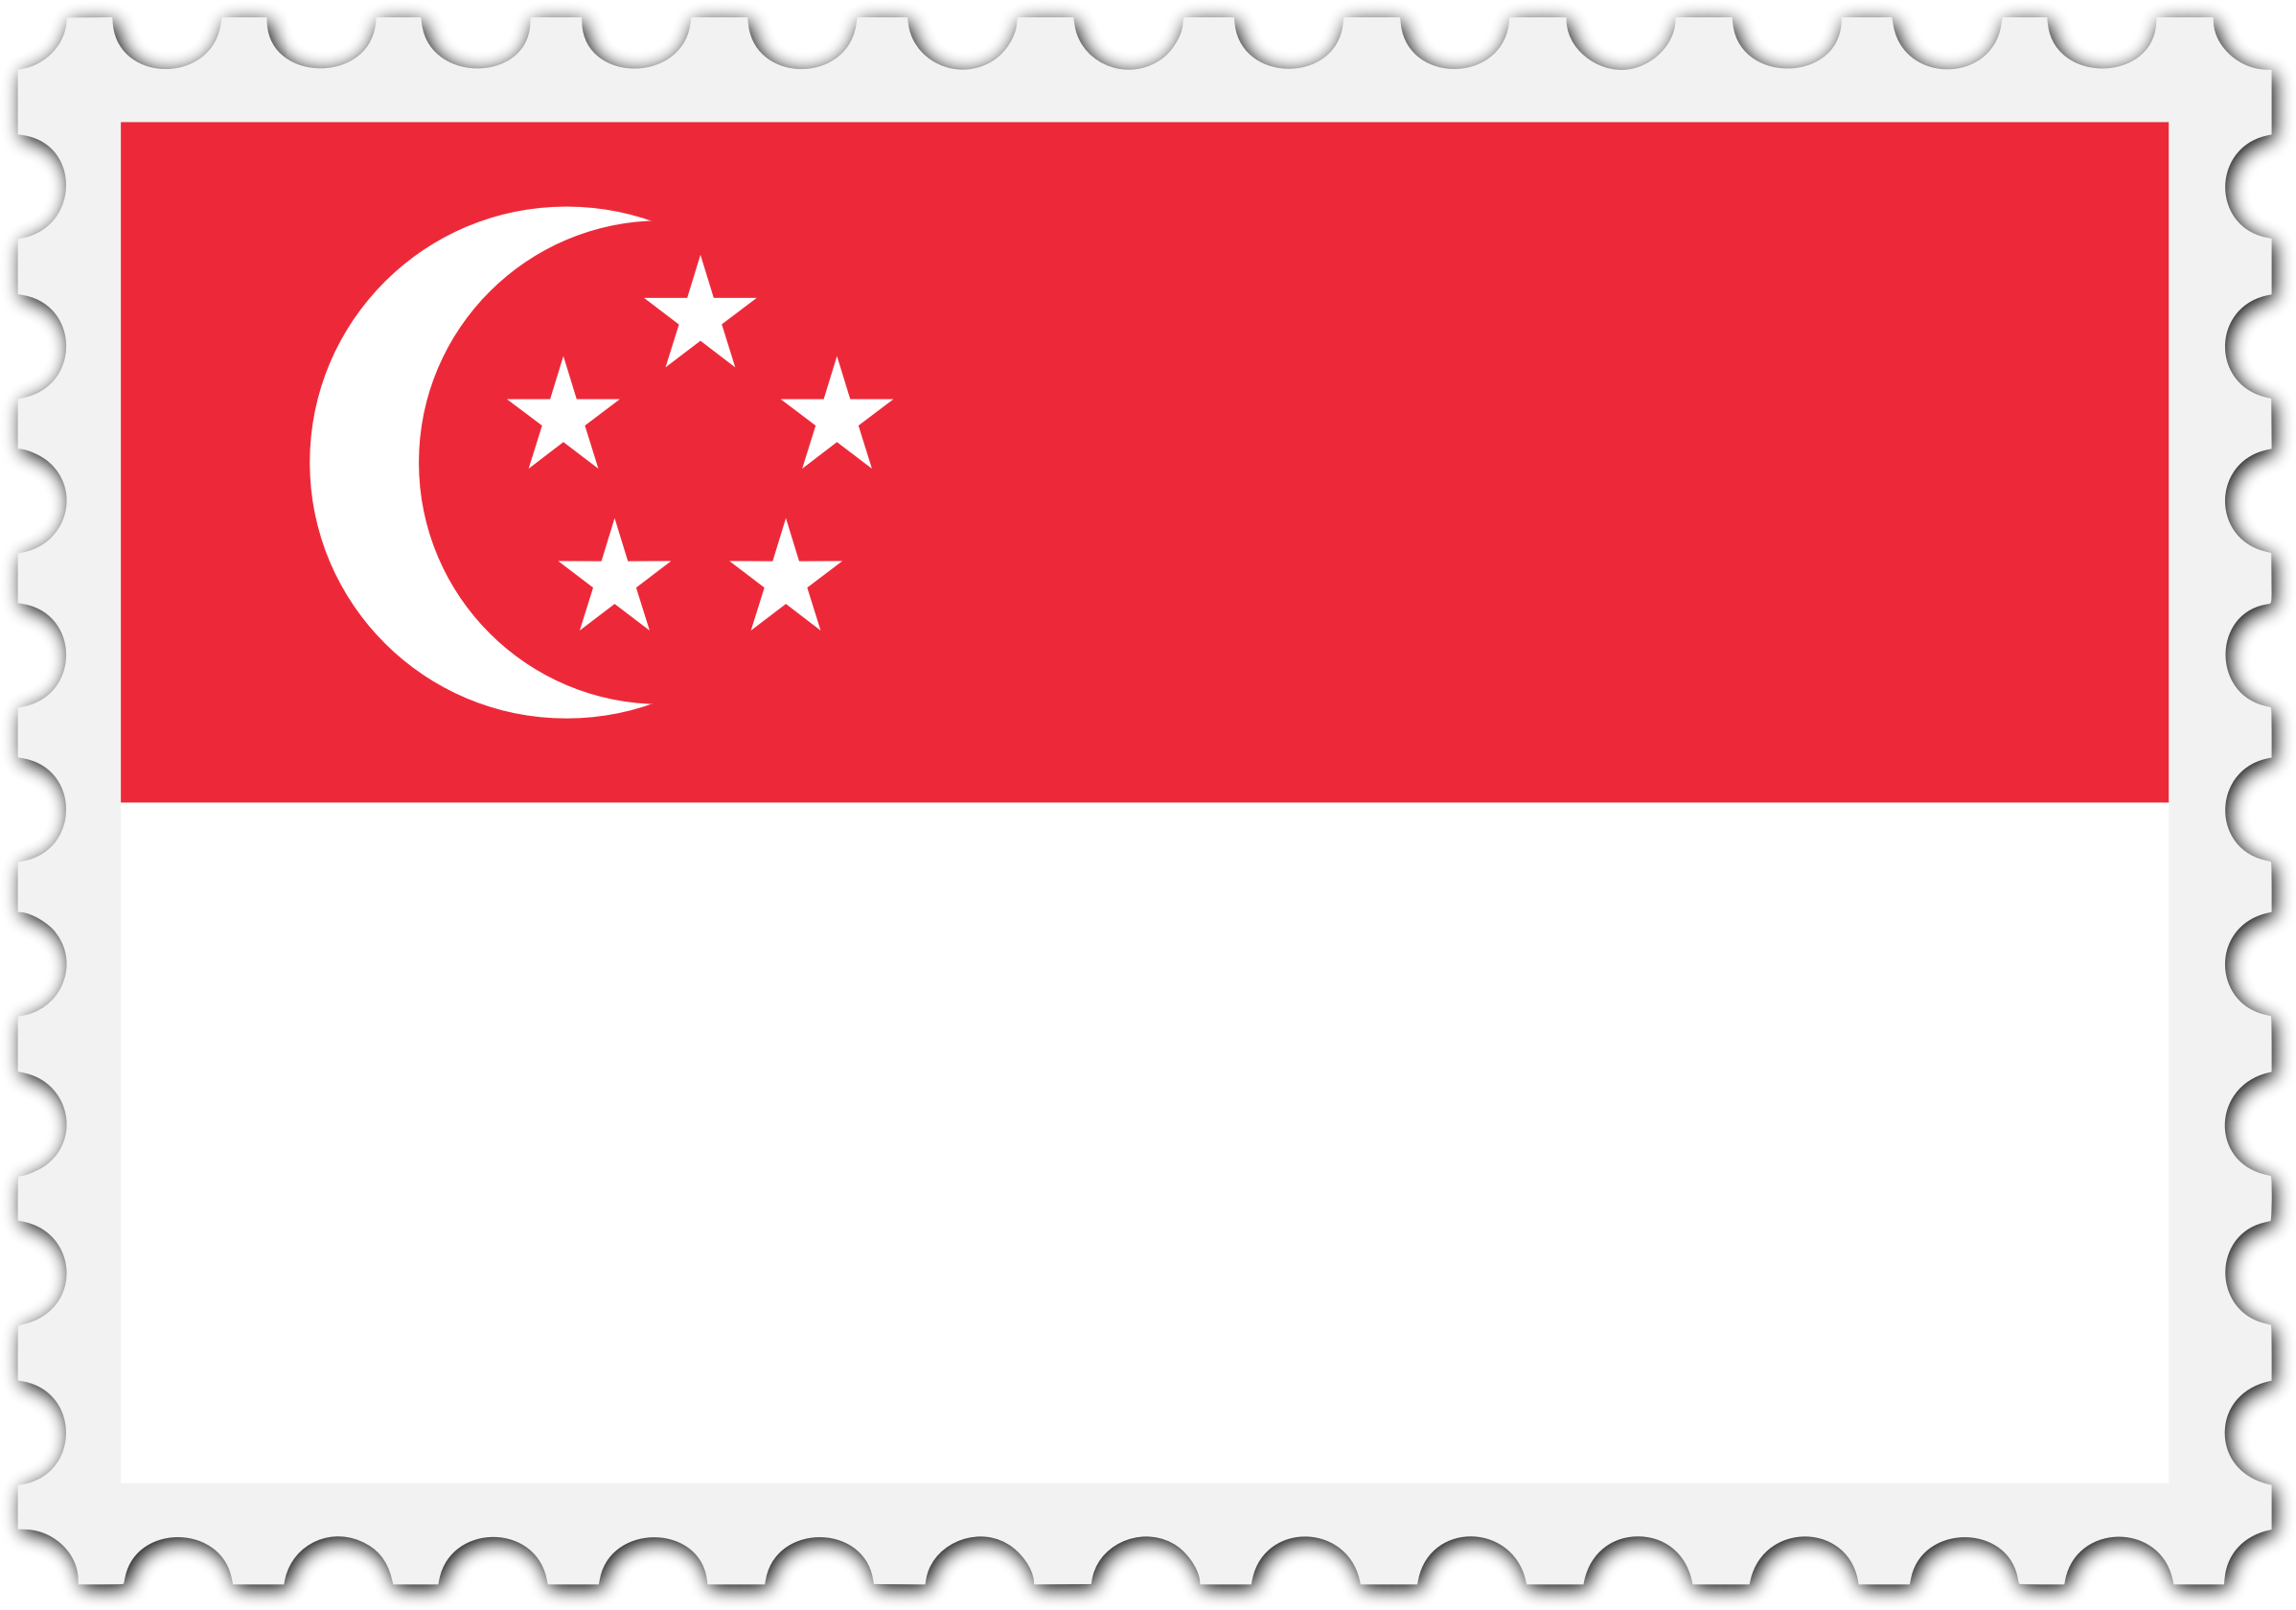 Singapore flag stamp by Firkin